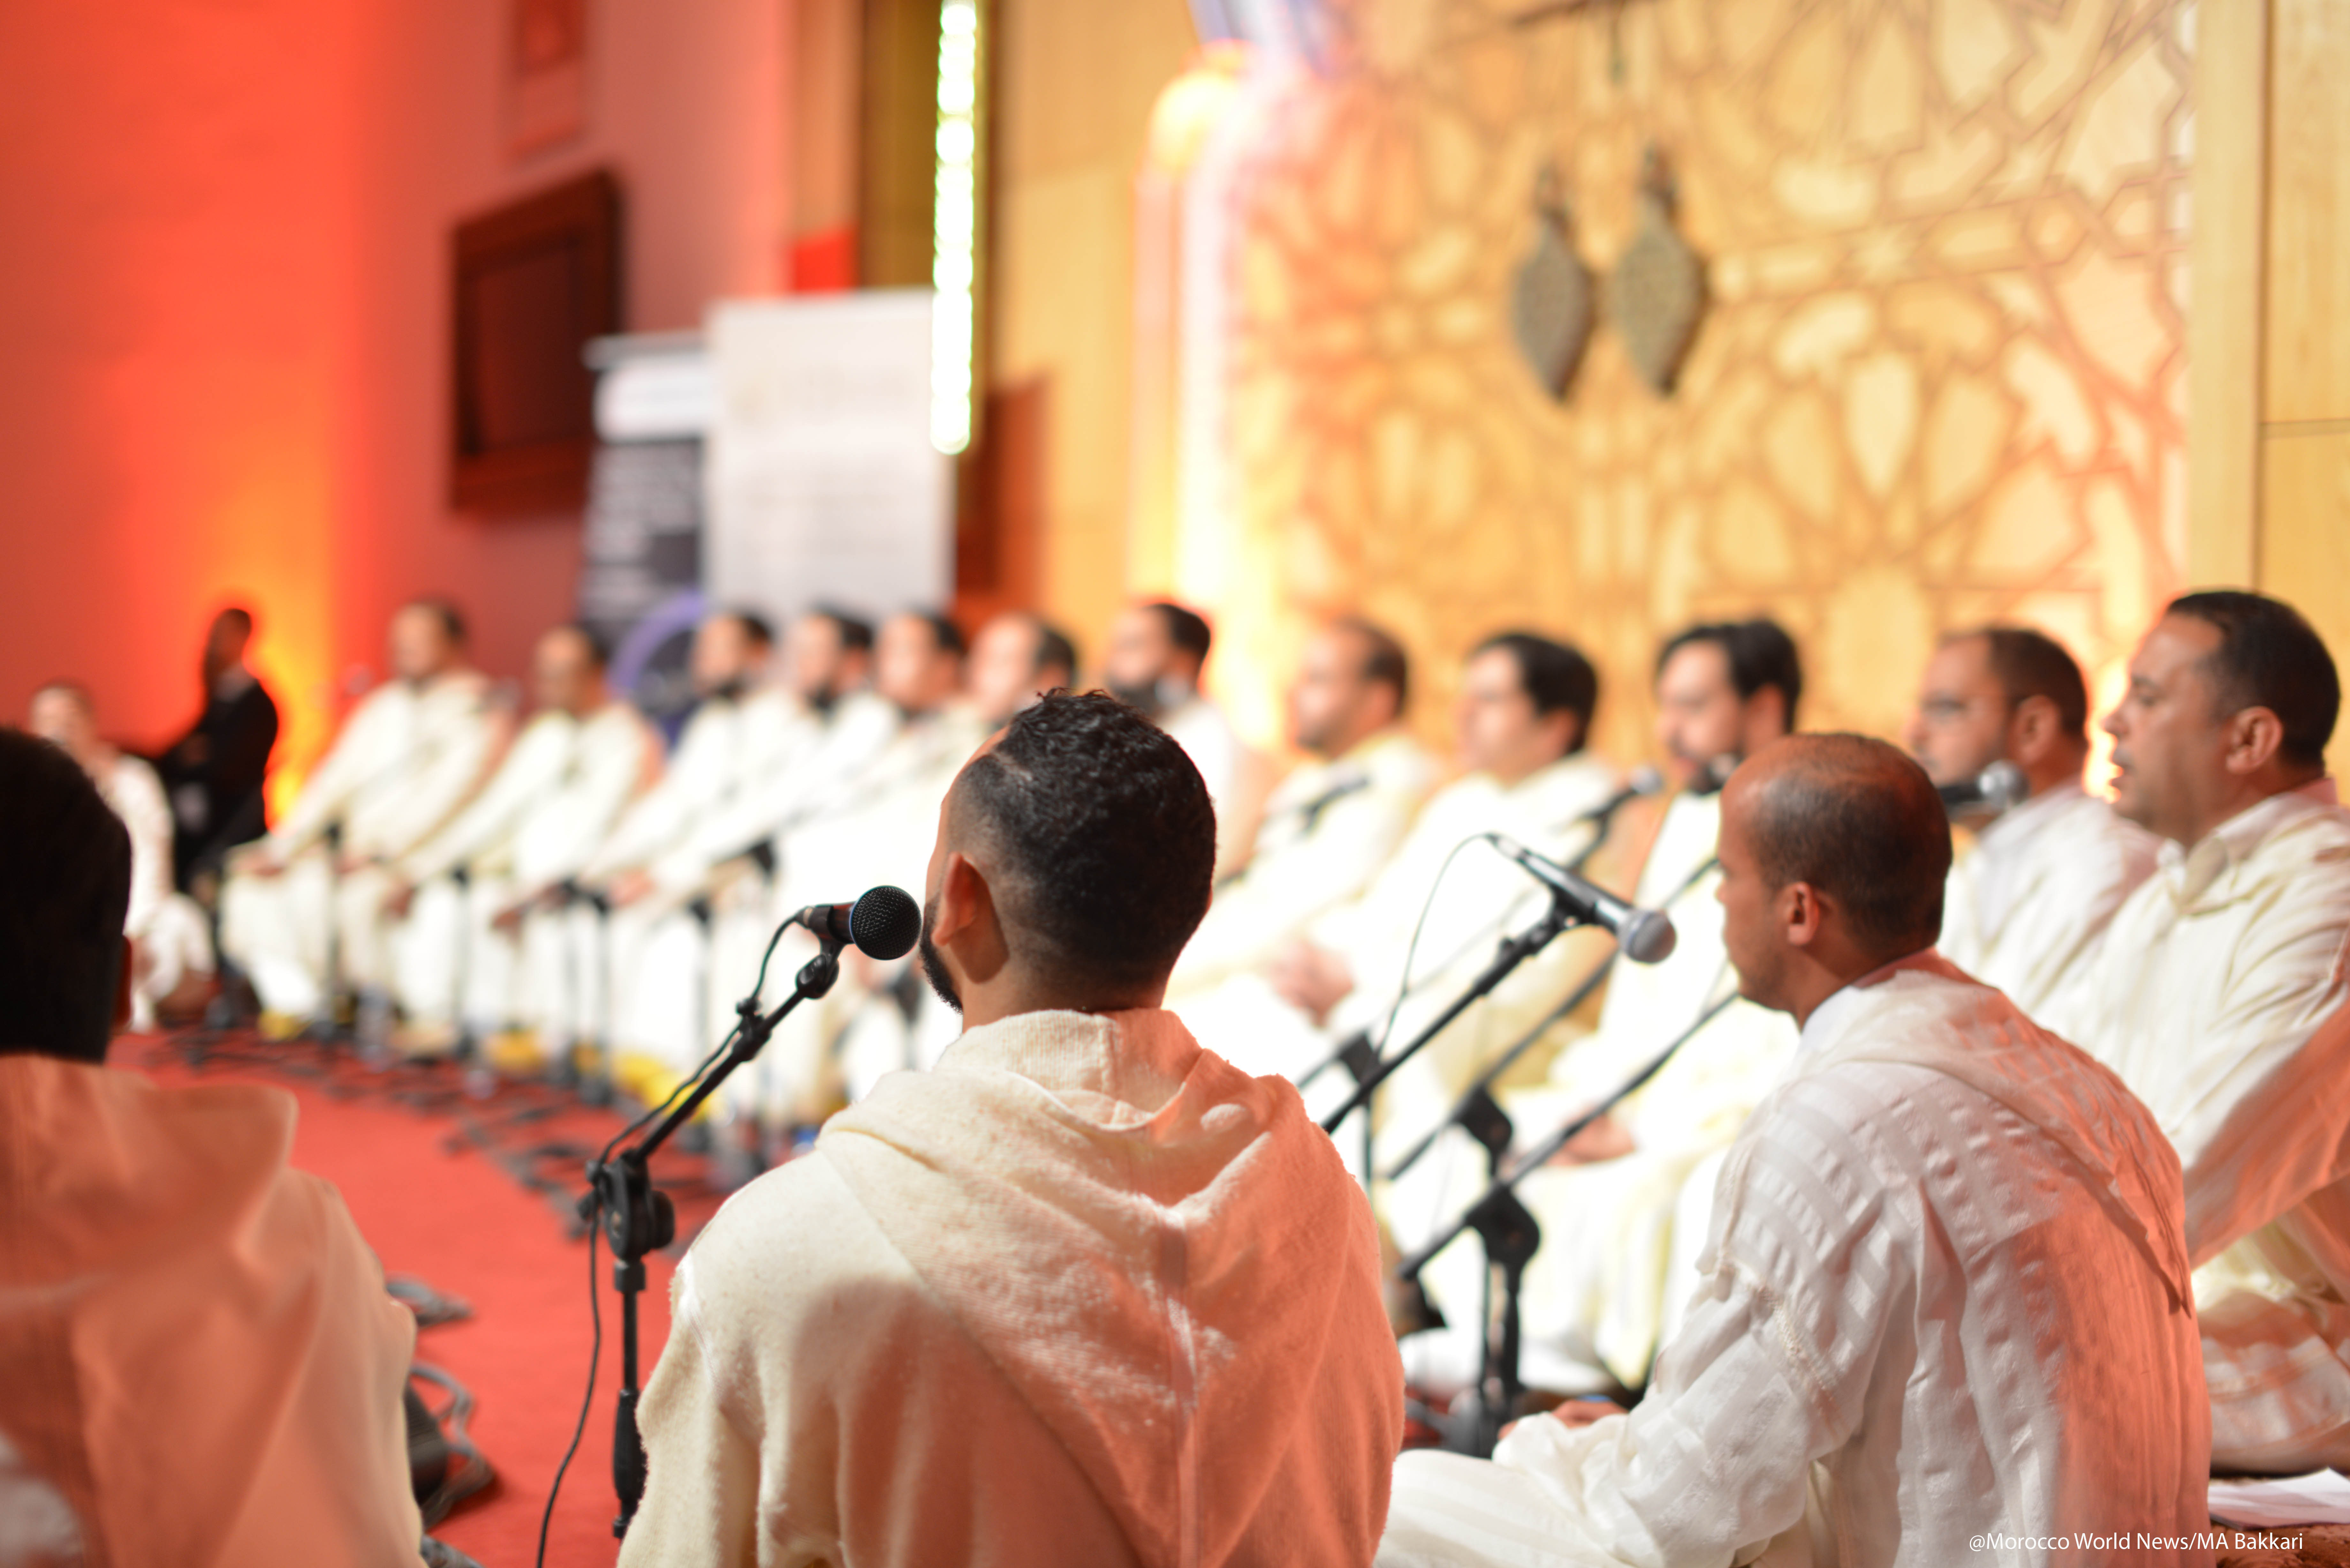 Sufi music group Tariqa Boutchichiya at the 12th Fez Festival of Sufi Culture